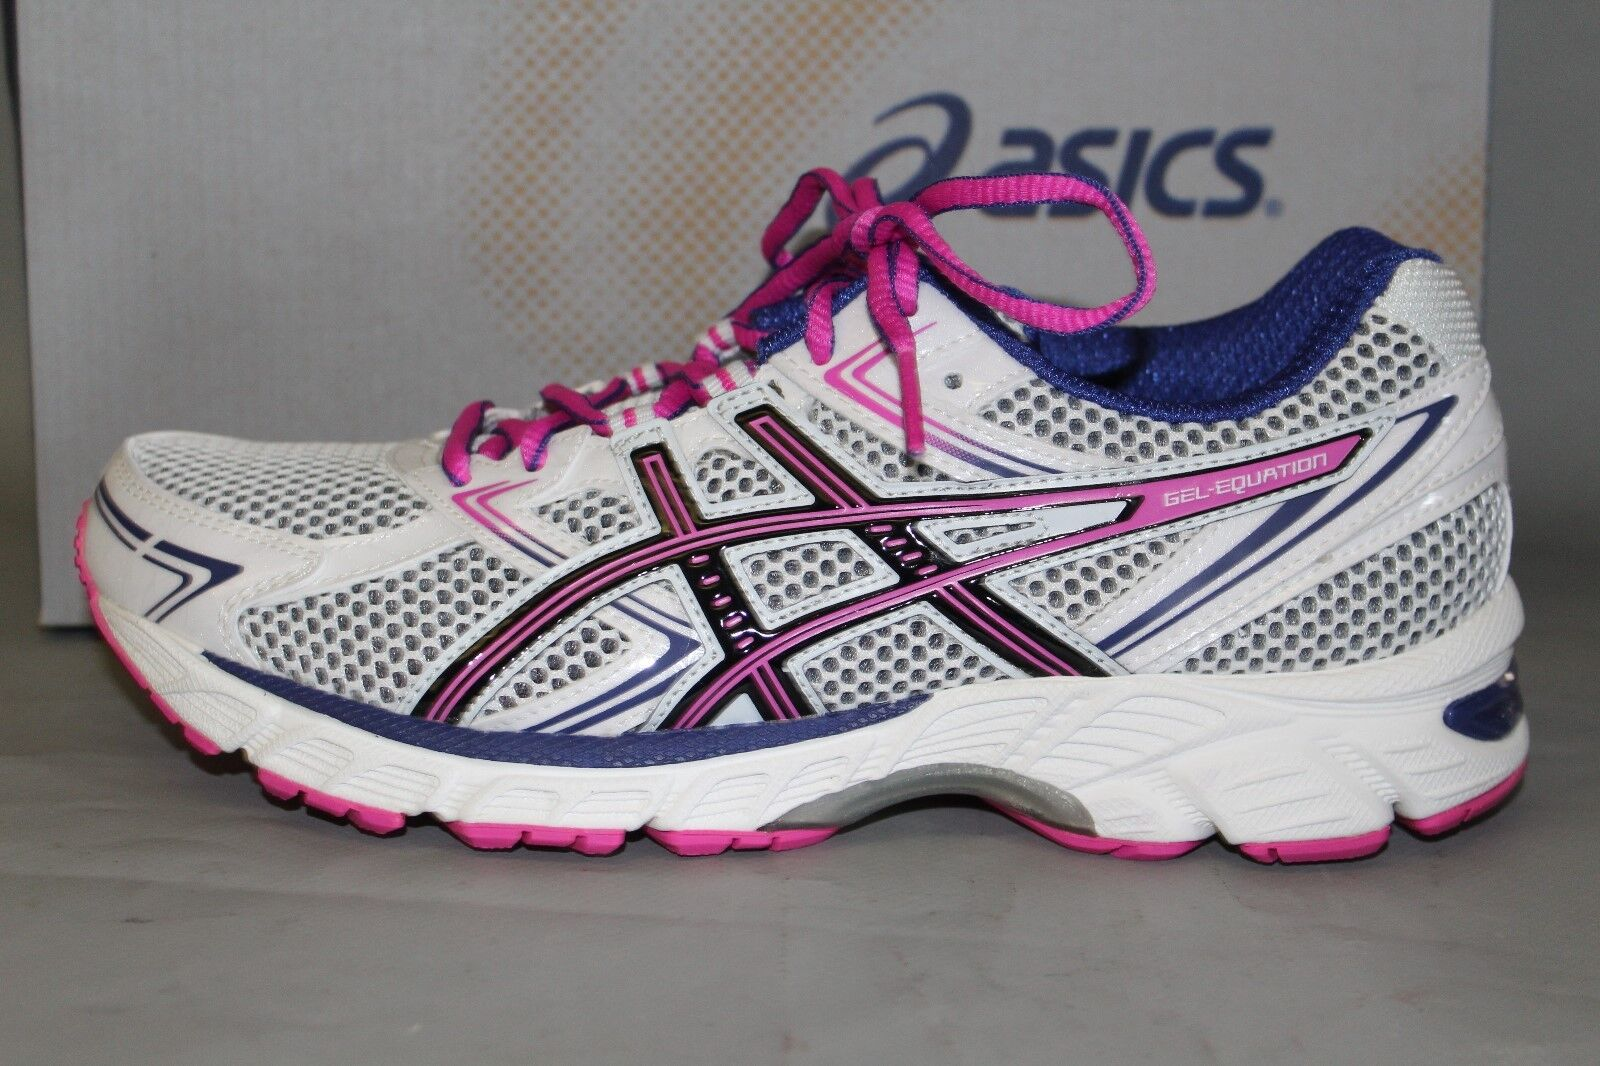 NEW Women's Asics Supportive Size 9 Medium, Gel-Equation 7 Supportive Asics Athletic Shoes 002c64